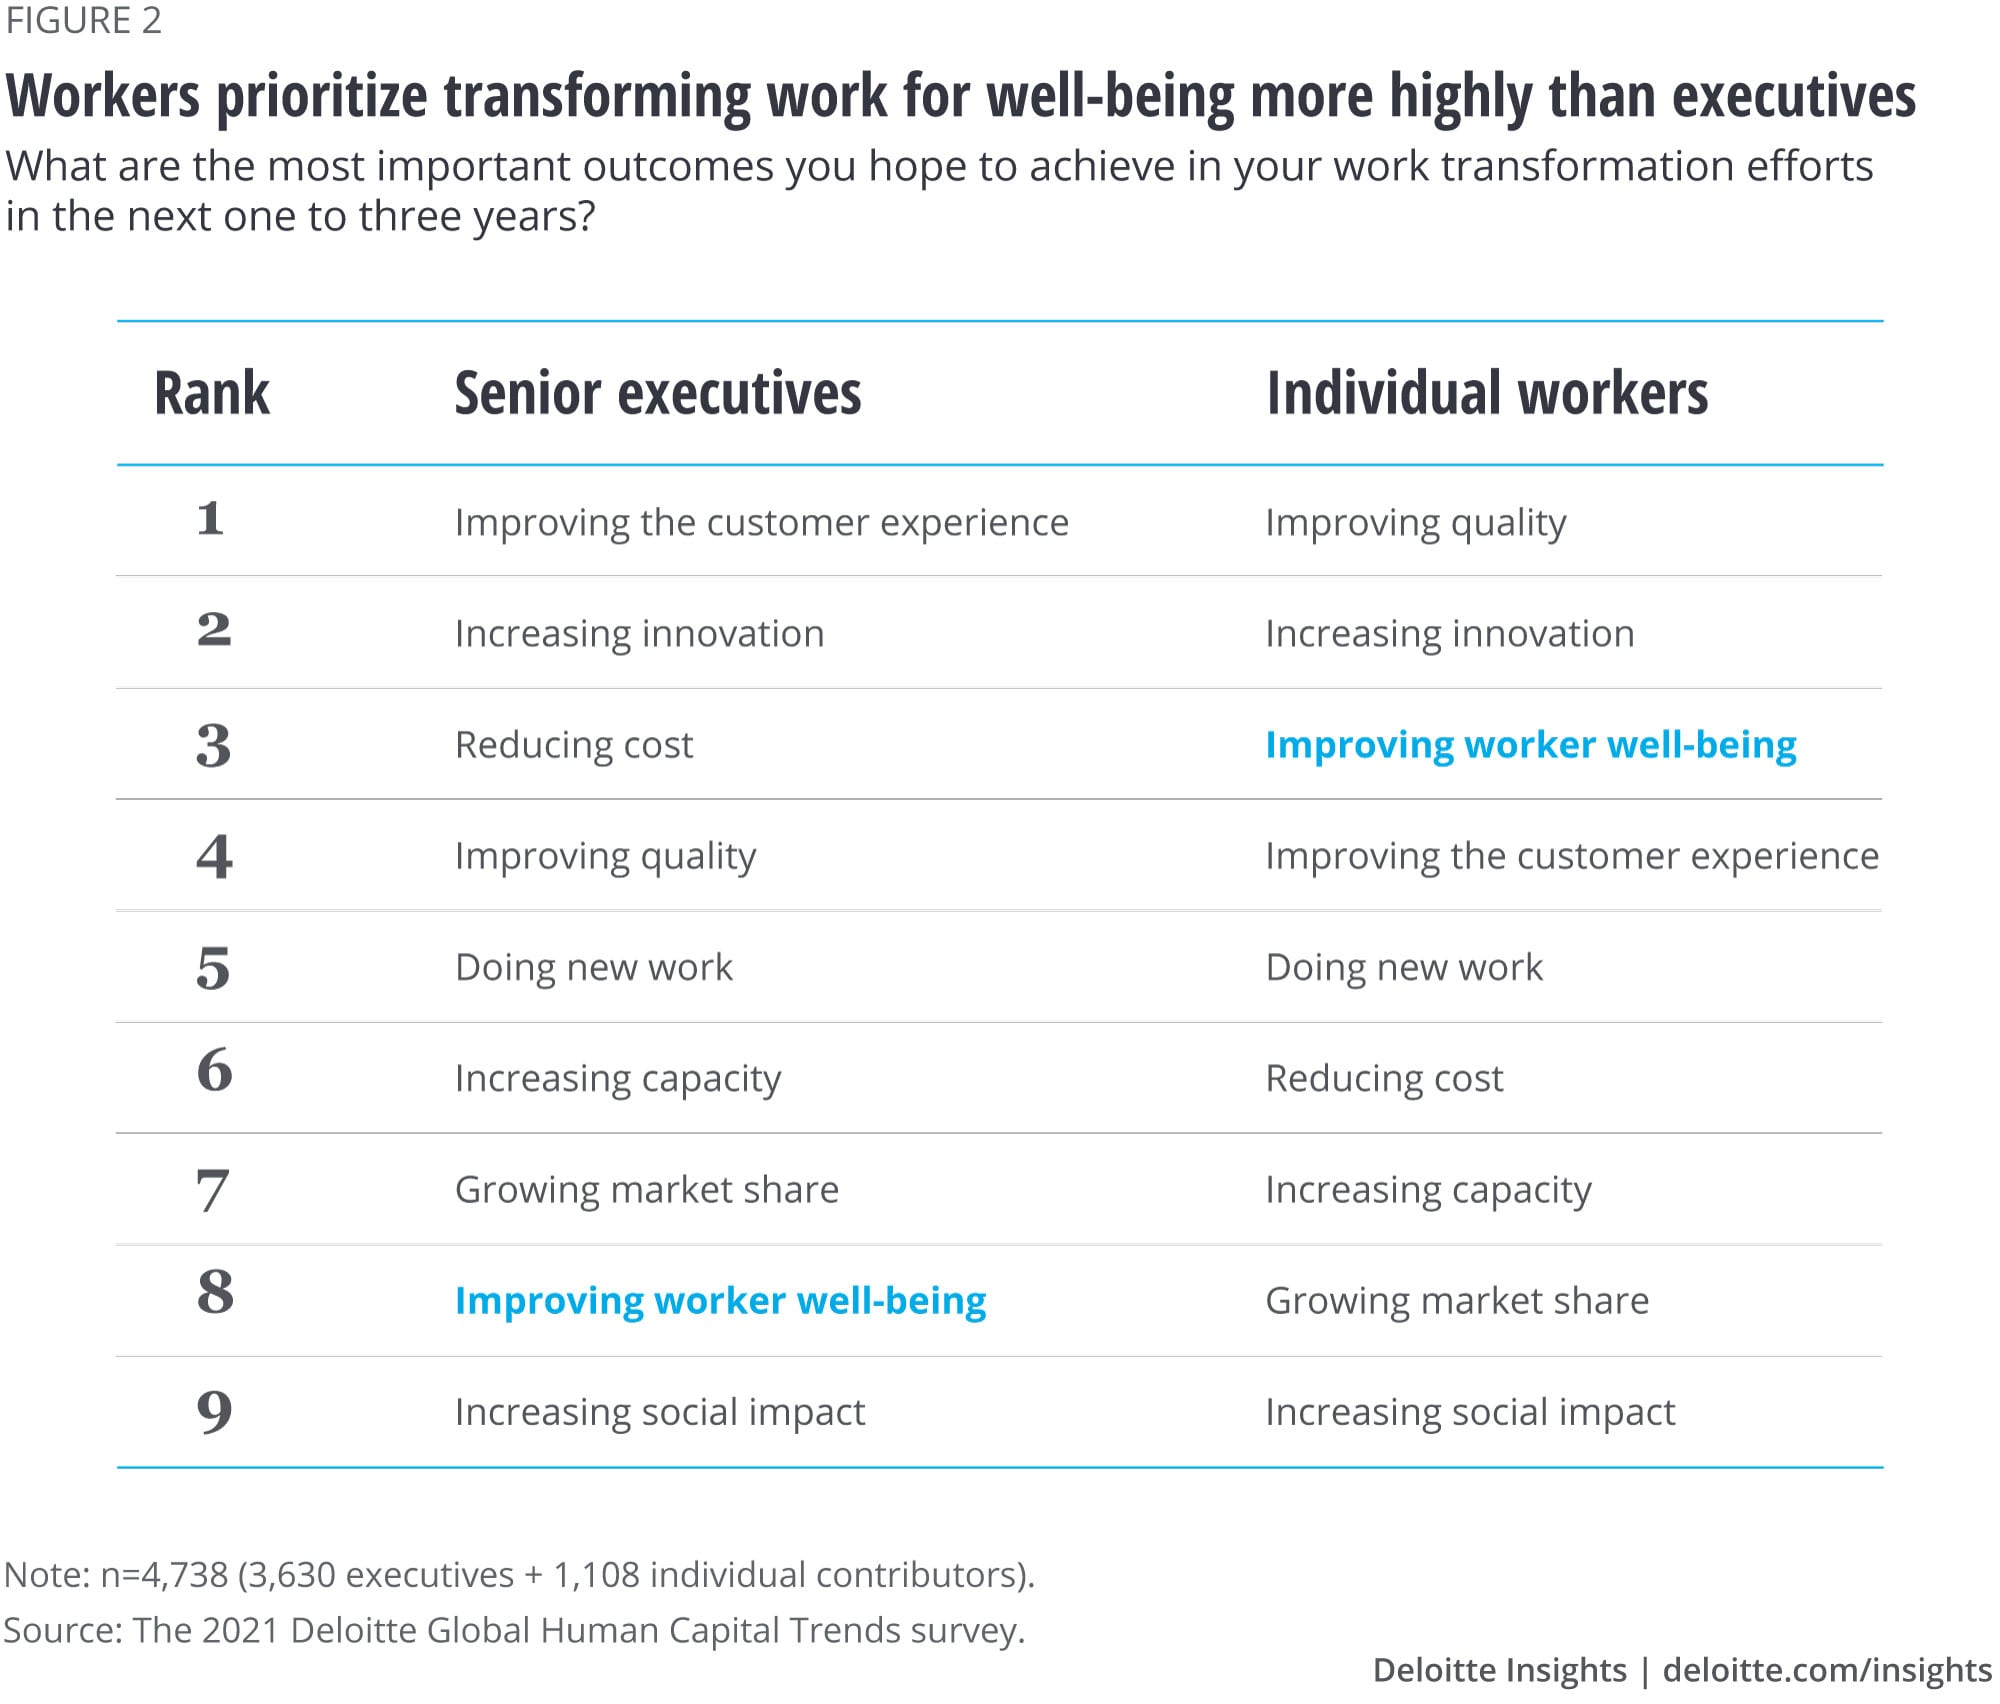 Workers prioritize transforming work for well-being more highly than executives